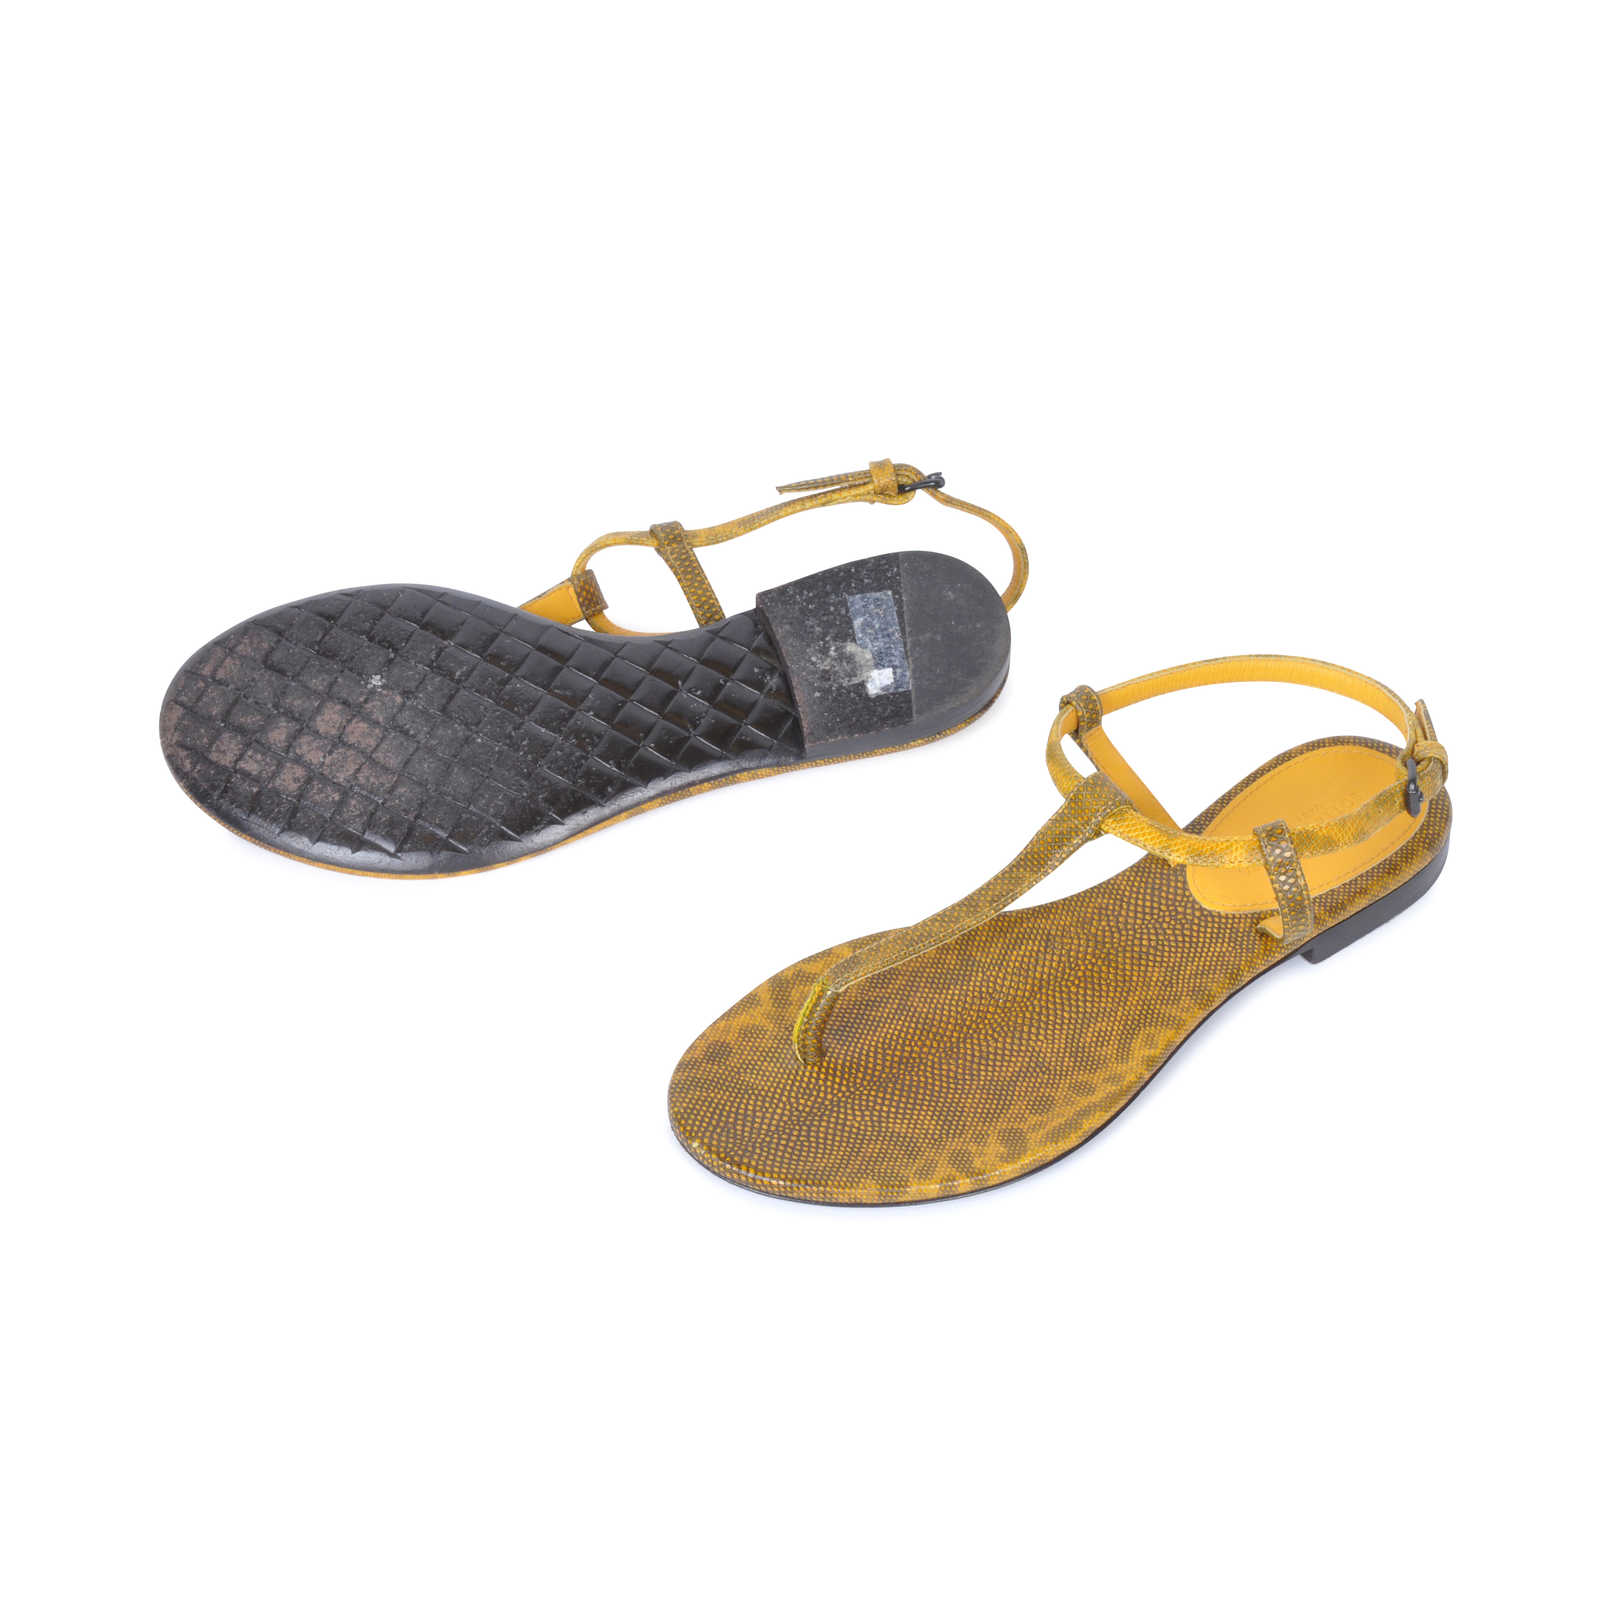 e131536323 ... Authentic Second Hand Bottega Veneta Lizard Thong Sandals (PSS-080-00061)  ...